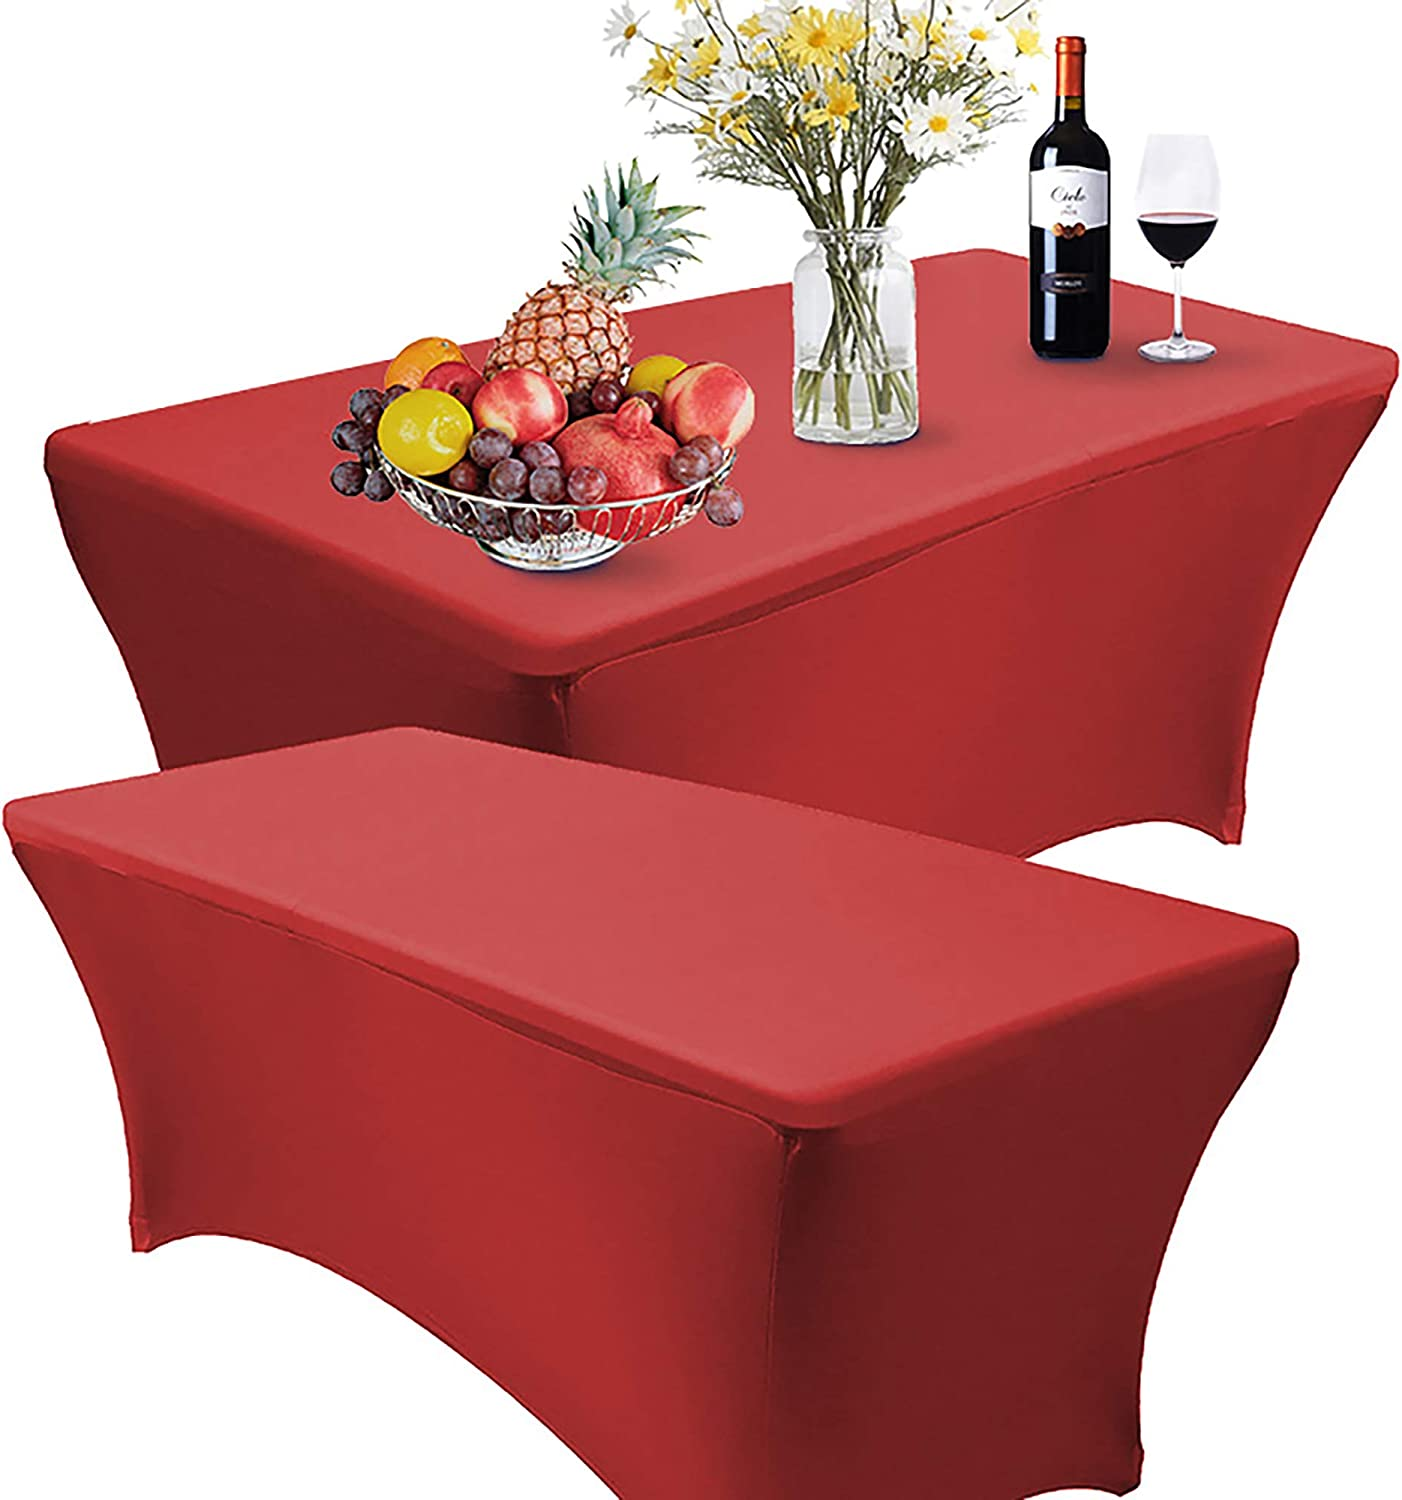 Reliancer 2 Pack 8FT Rectangular Spandex Table Cover Four-Way Tight Fitted Stretch Tablecloth Table Cloth for Outdoor Party DJ Tradeshow Banquet Vendor Wedding Celebration (2PC 8FT, Red)